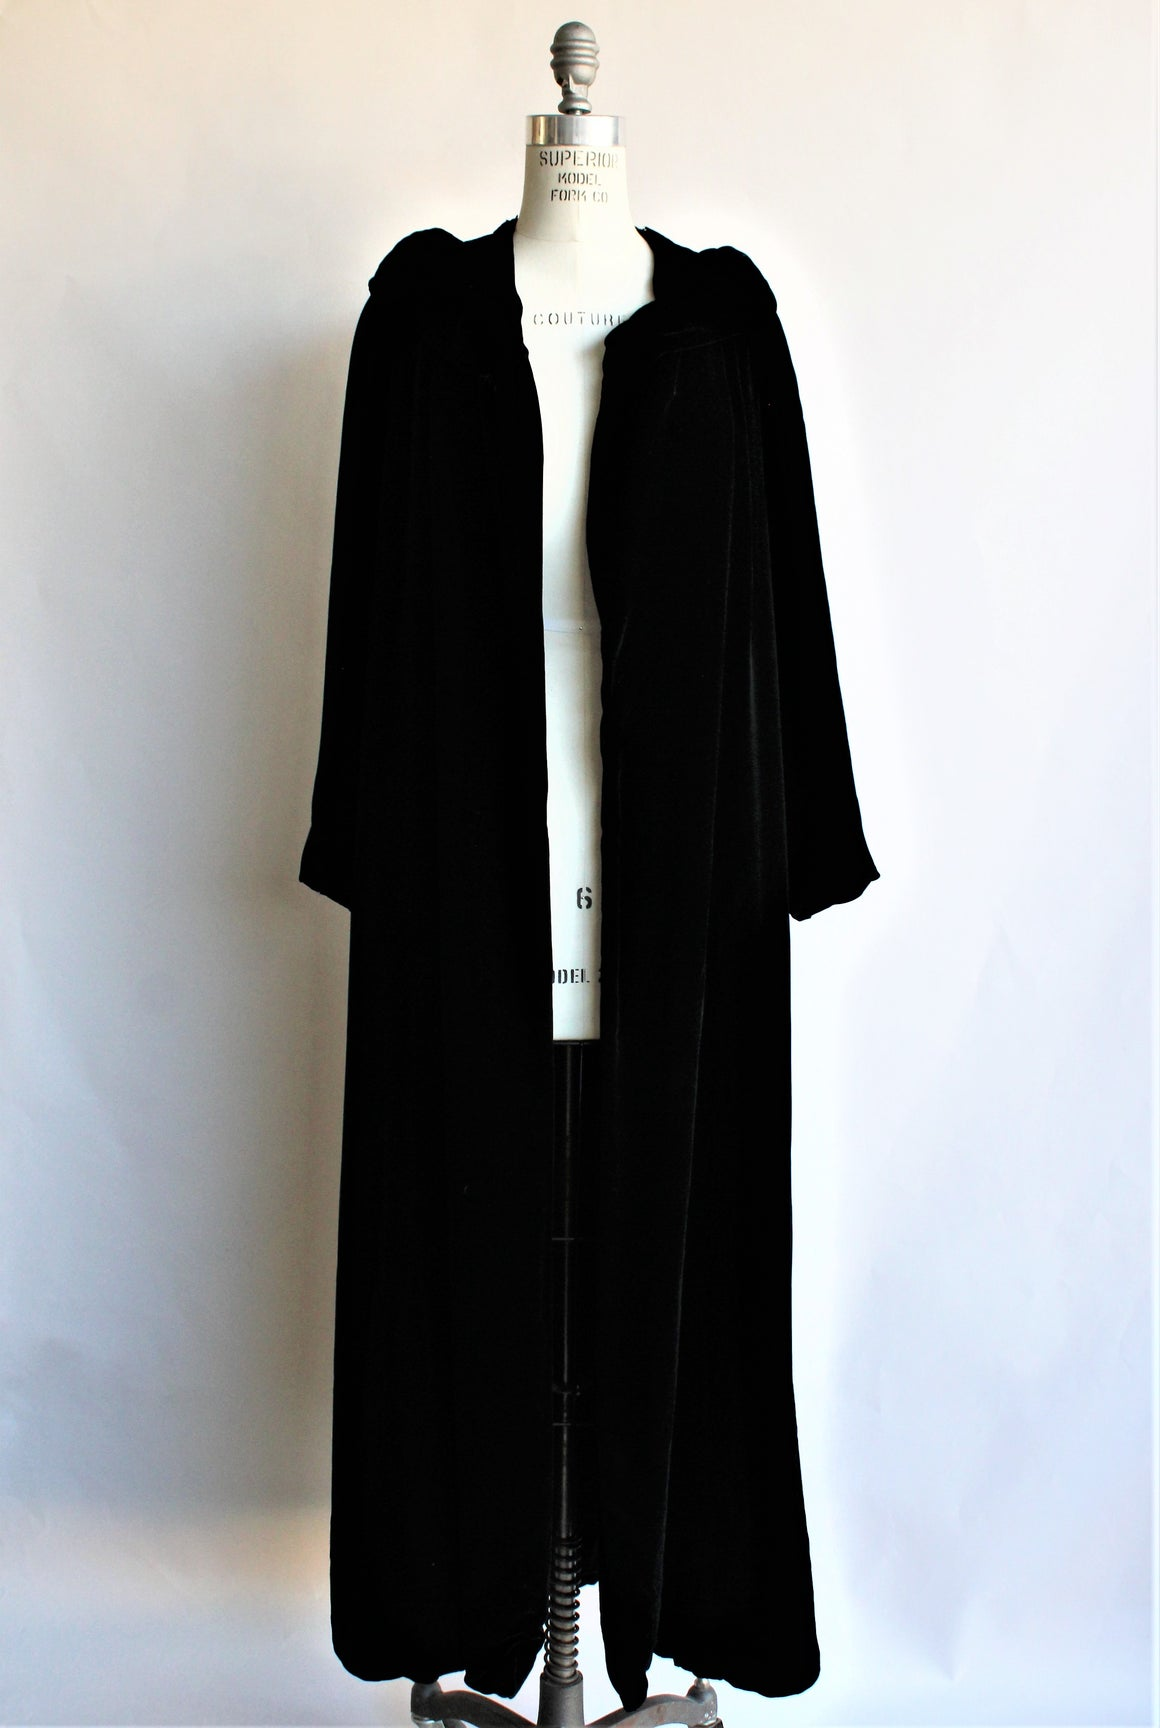 Vintage 1940s 1950s Black Velvet Opera Coat, Bergdorf Goodman New York